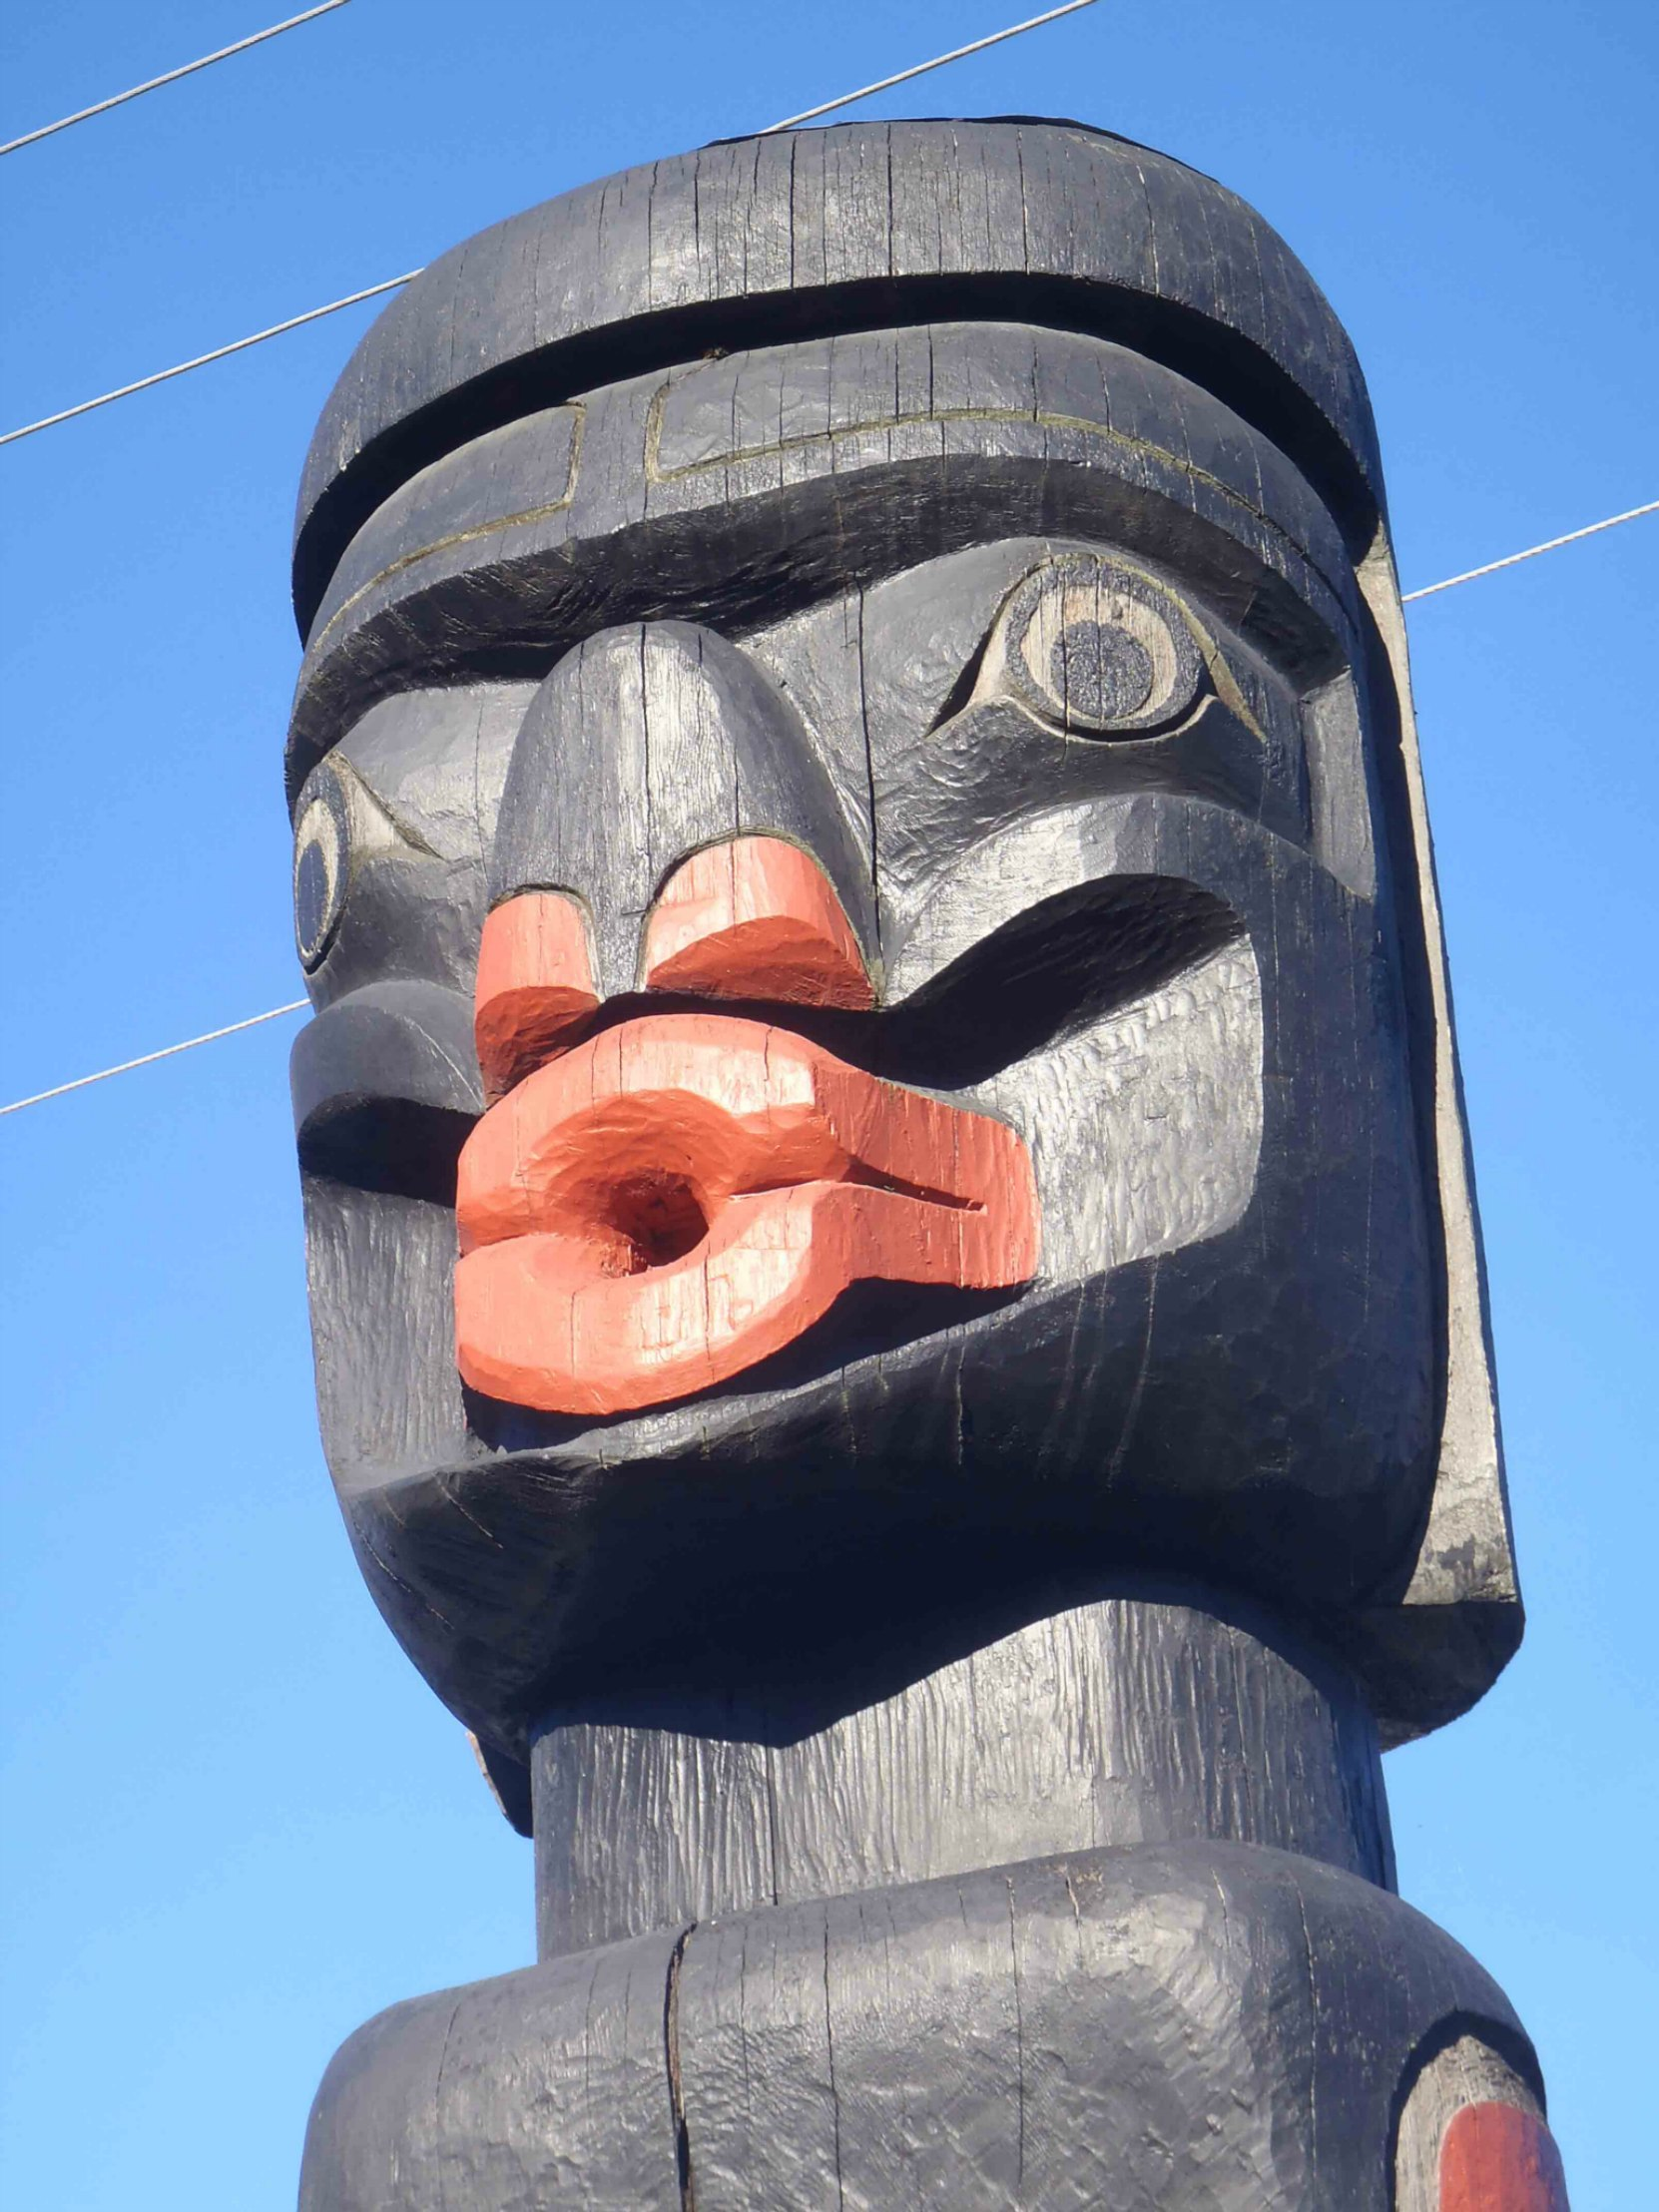 Dzunuk'wa pole, Wild Woman figure, face detail, Government Street at Kenneth Street, Duncan, B.C.